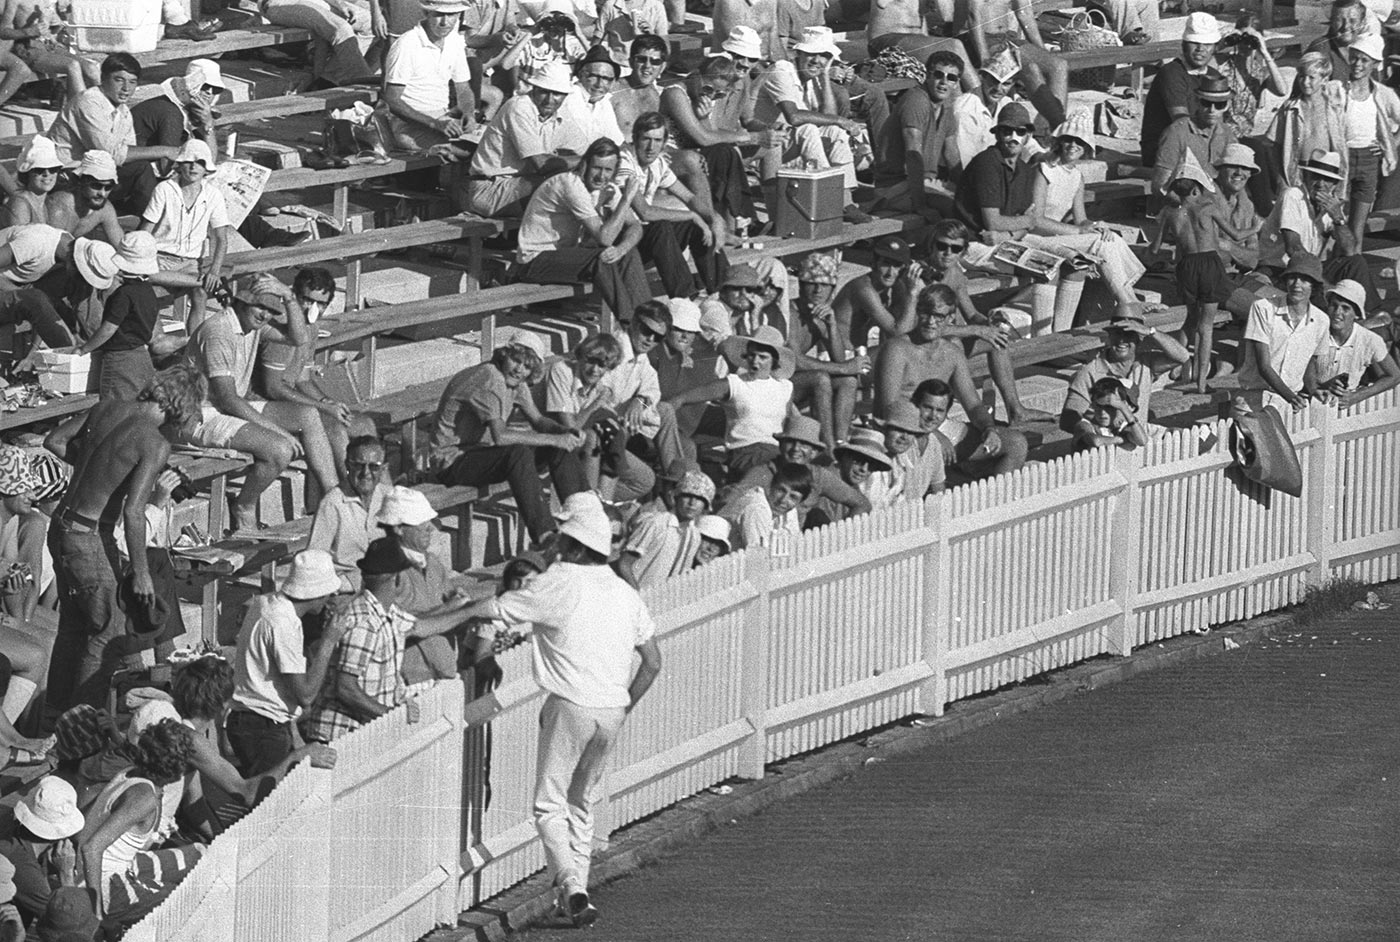 John Snow being manhandled by fans on the boundary was an early milestone in Australian crowds turning aggressive